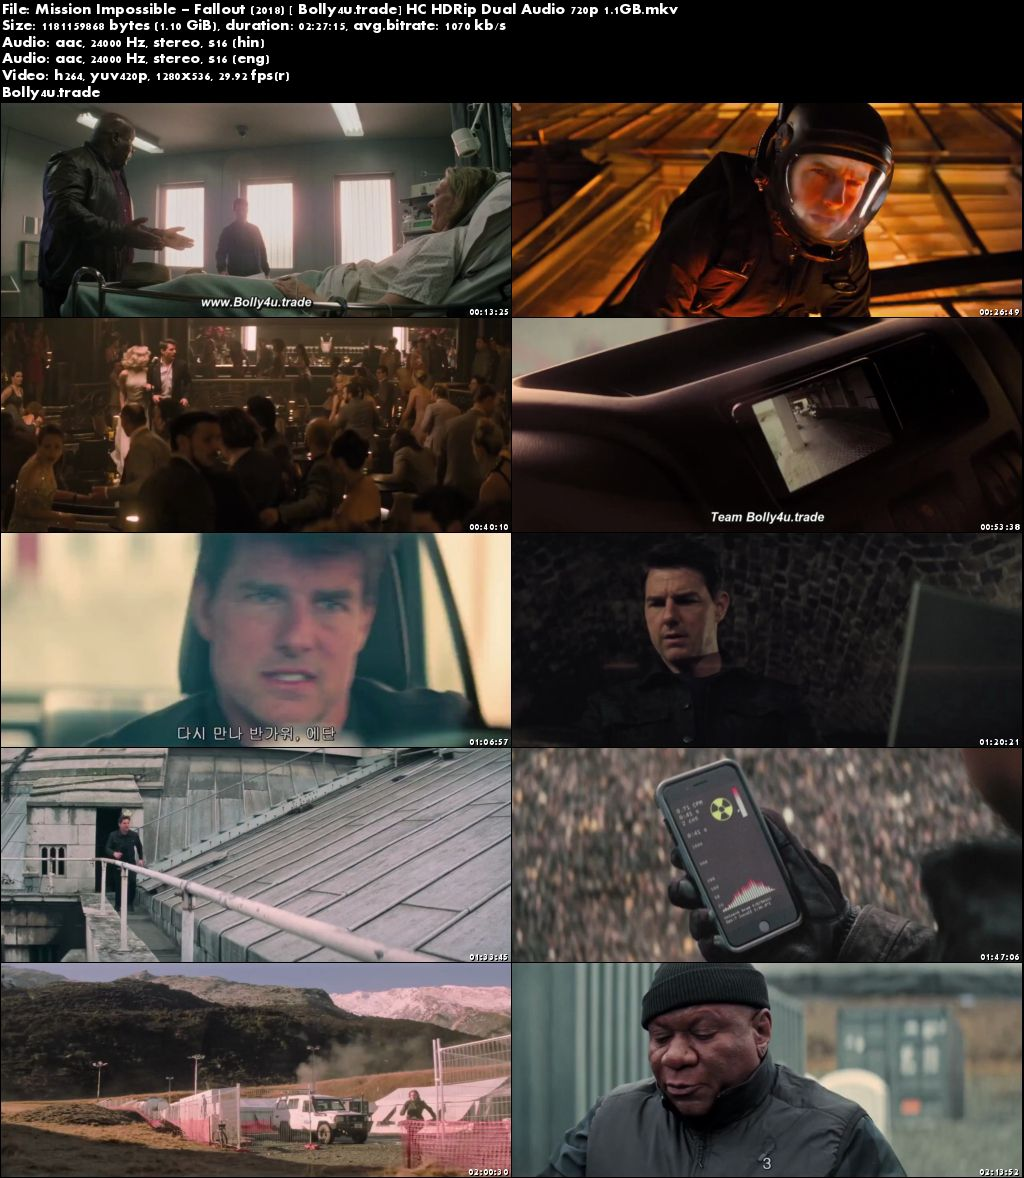 download mission impossible full movie in hindi 720p